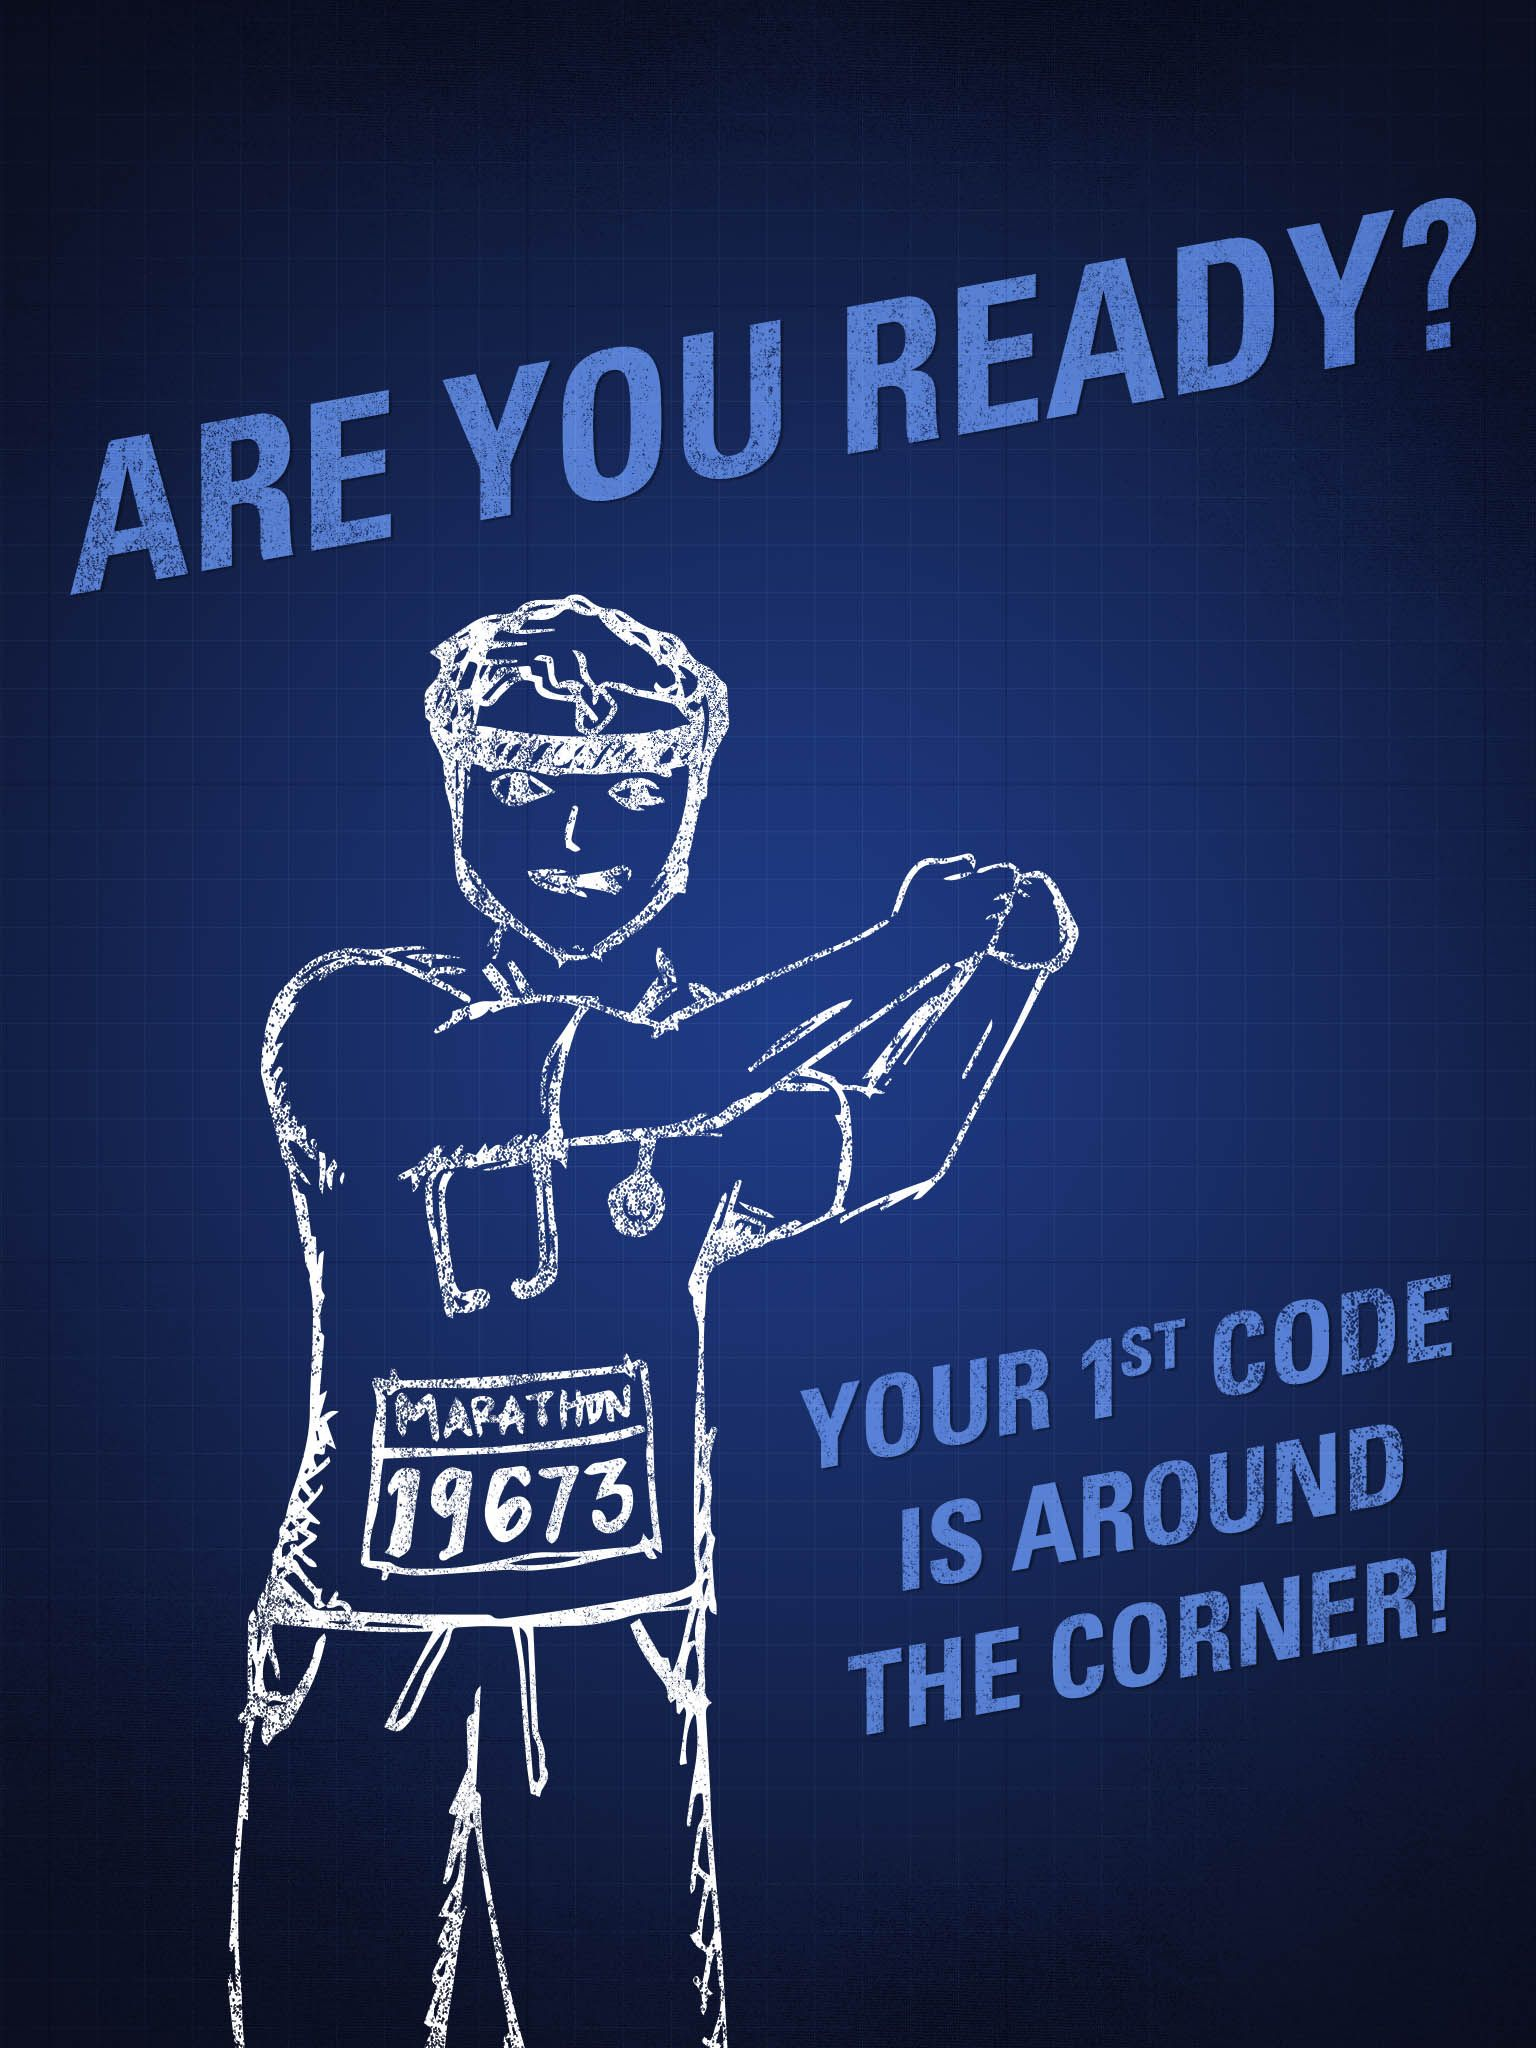 """In nursing school you will gain a solid foundation of knowledge. Build upon that foundation by reading Code Blue! Now What? In Ch 3 """"Are You Ready"""", discover how important of a role you WILL play in whether your patient lives or codes!   Click on the link below to download a preview for free!  https://thesnippetapp.com/web/writers/MichaelHeuninckx"""